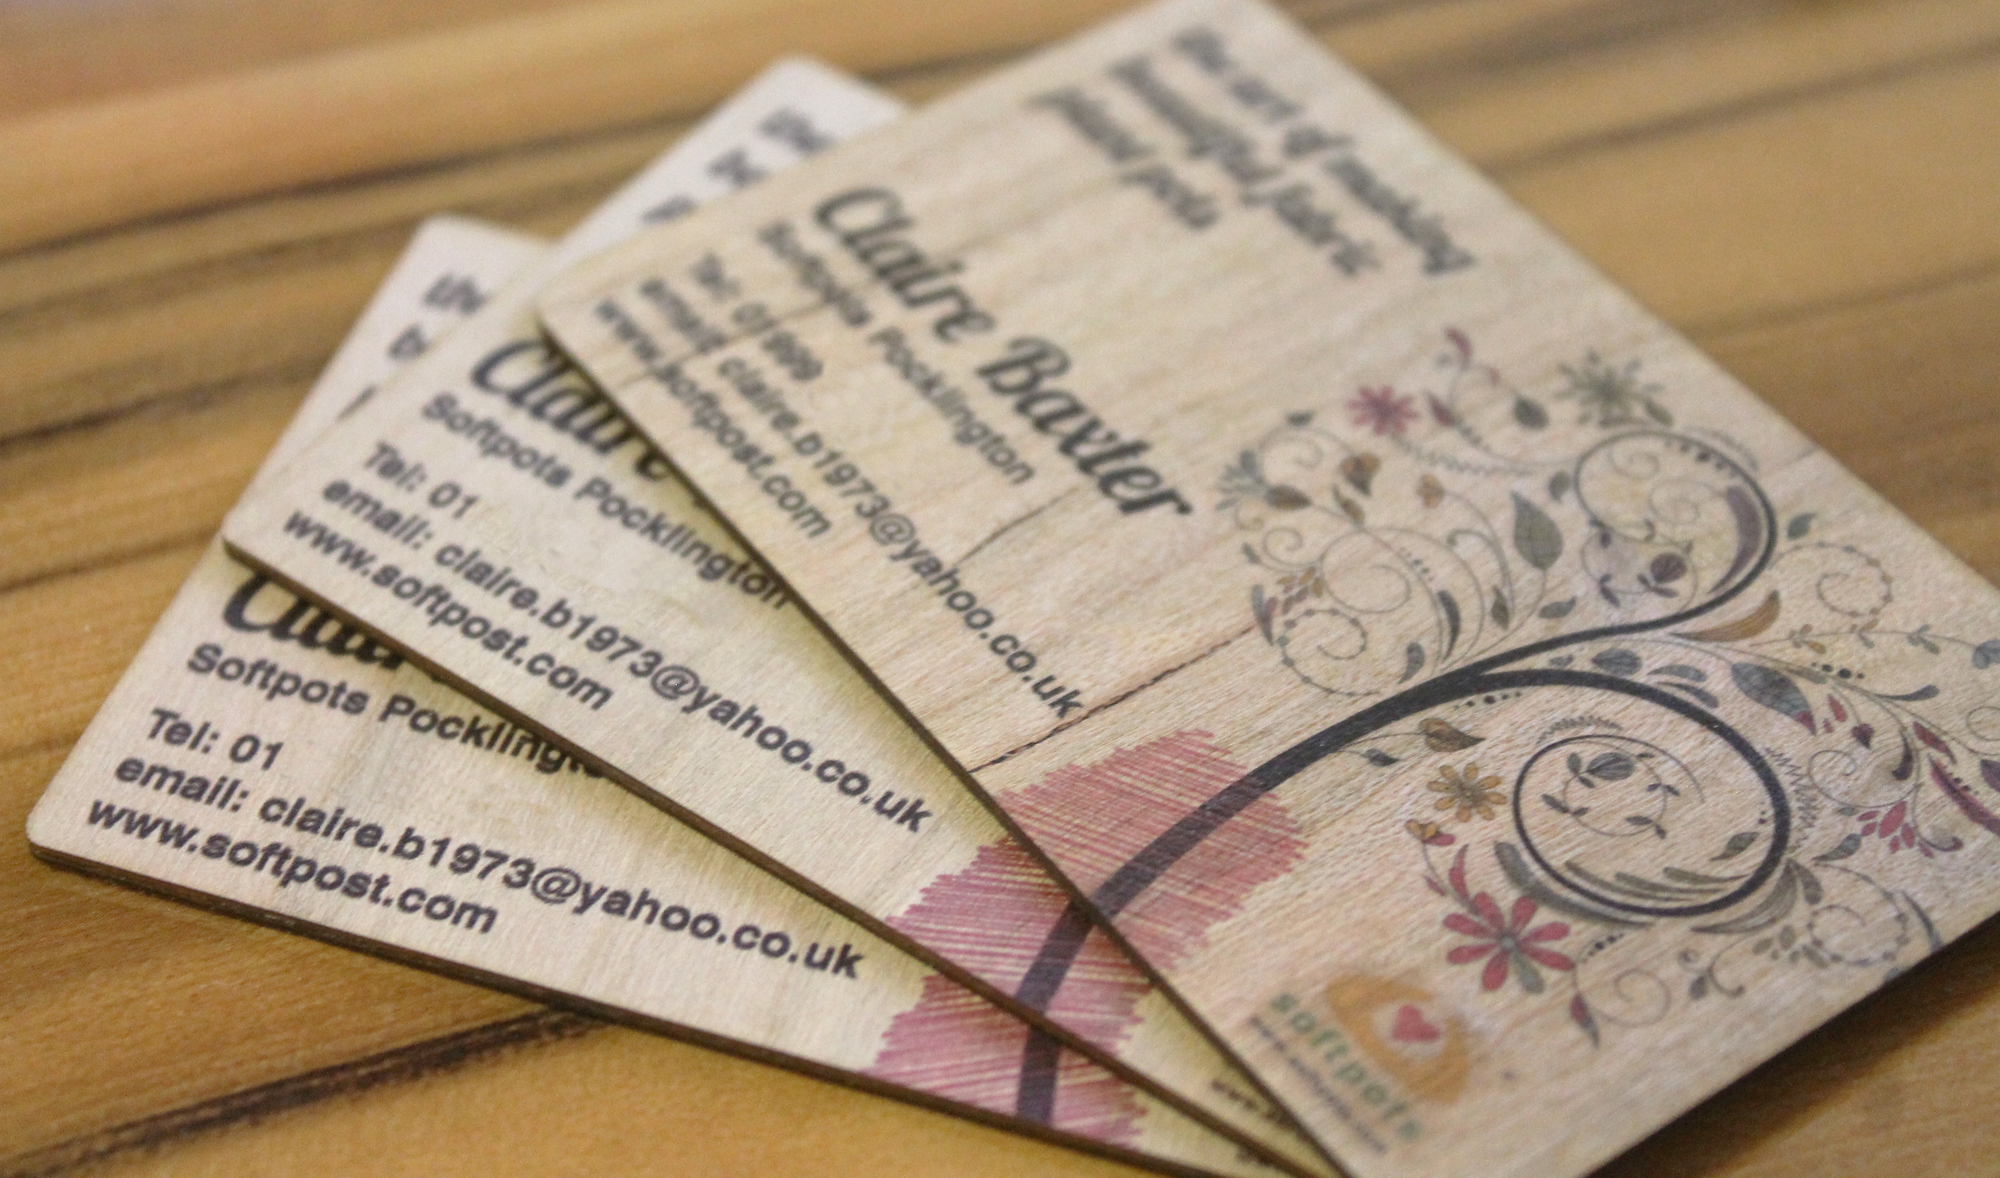 Wood Business Cards | Inspirwood